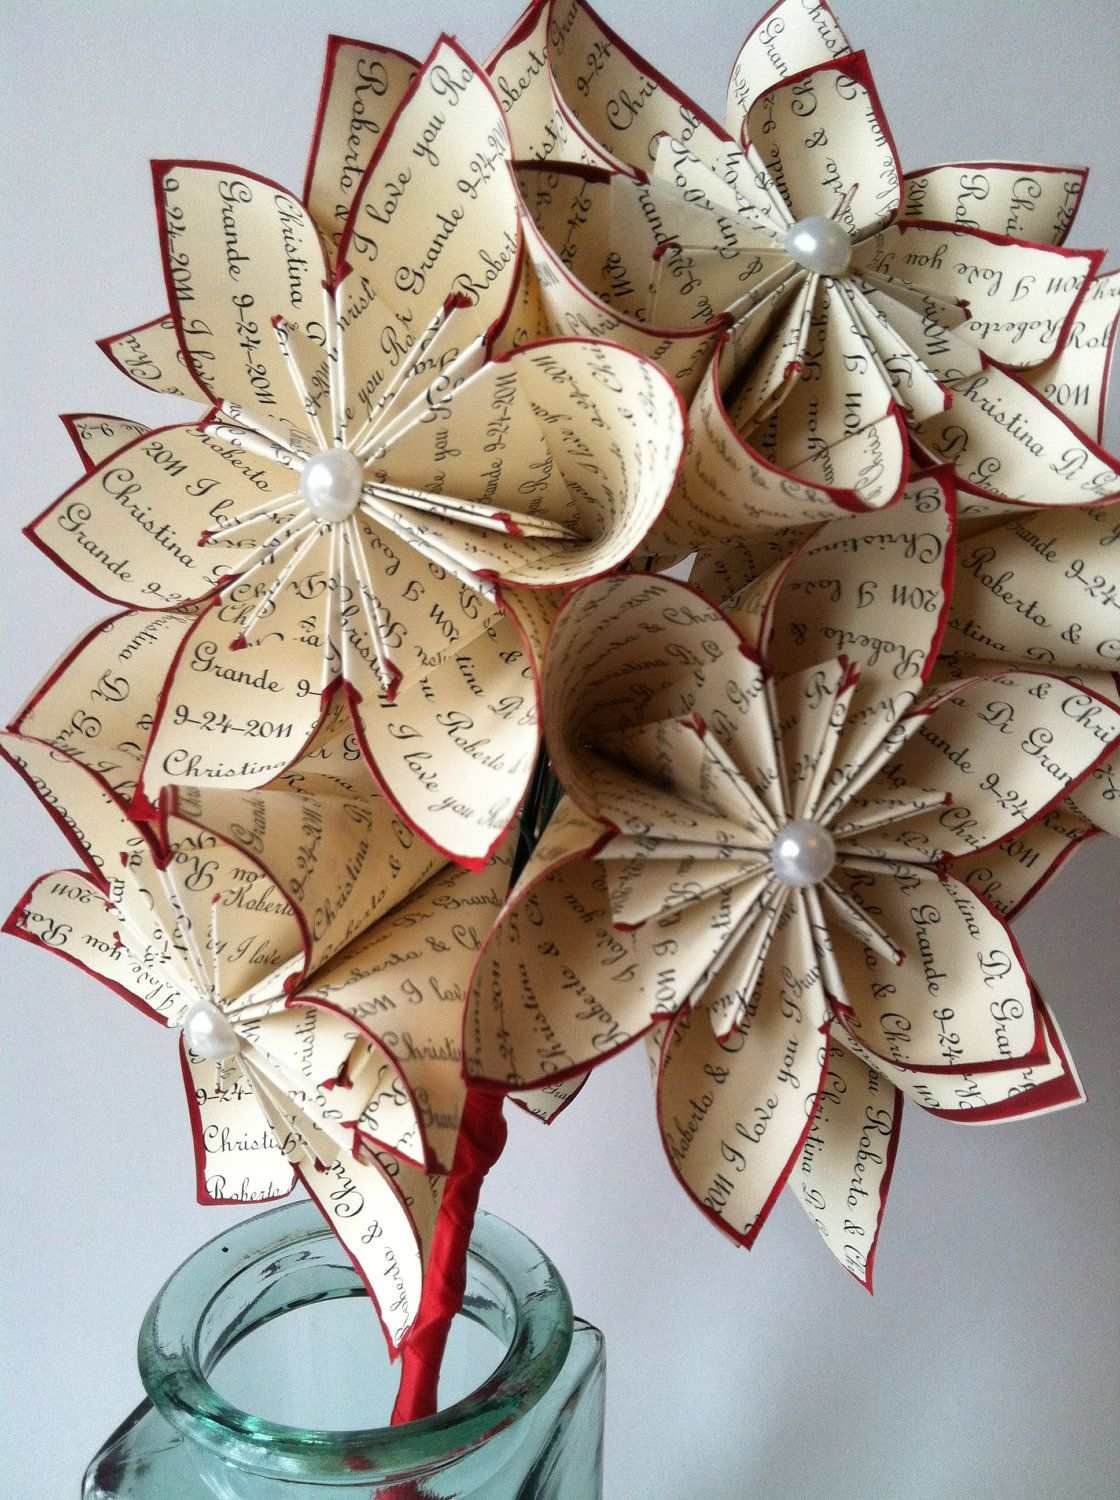 A Dozen I Love You S 12 Paper Flowers Wedding 1st Anniversary Gifts For Her Bouquet Origami Red Rose Made To Order